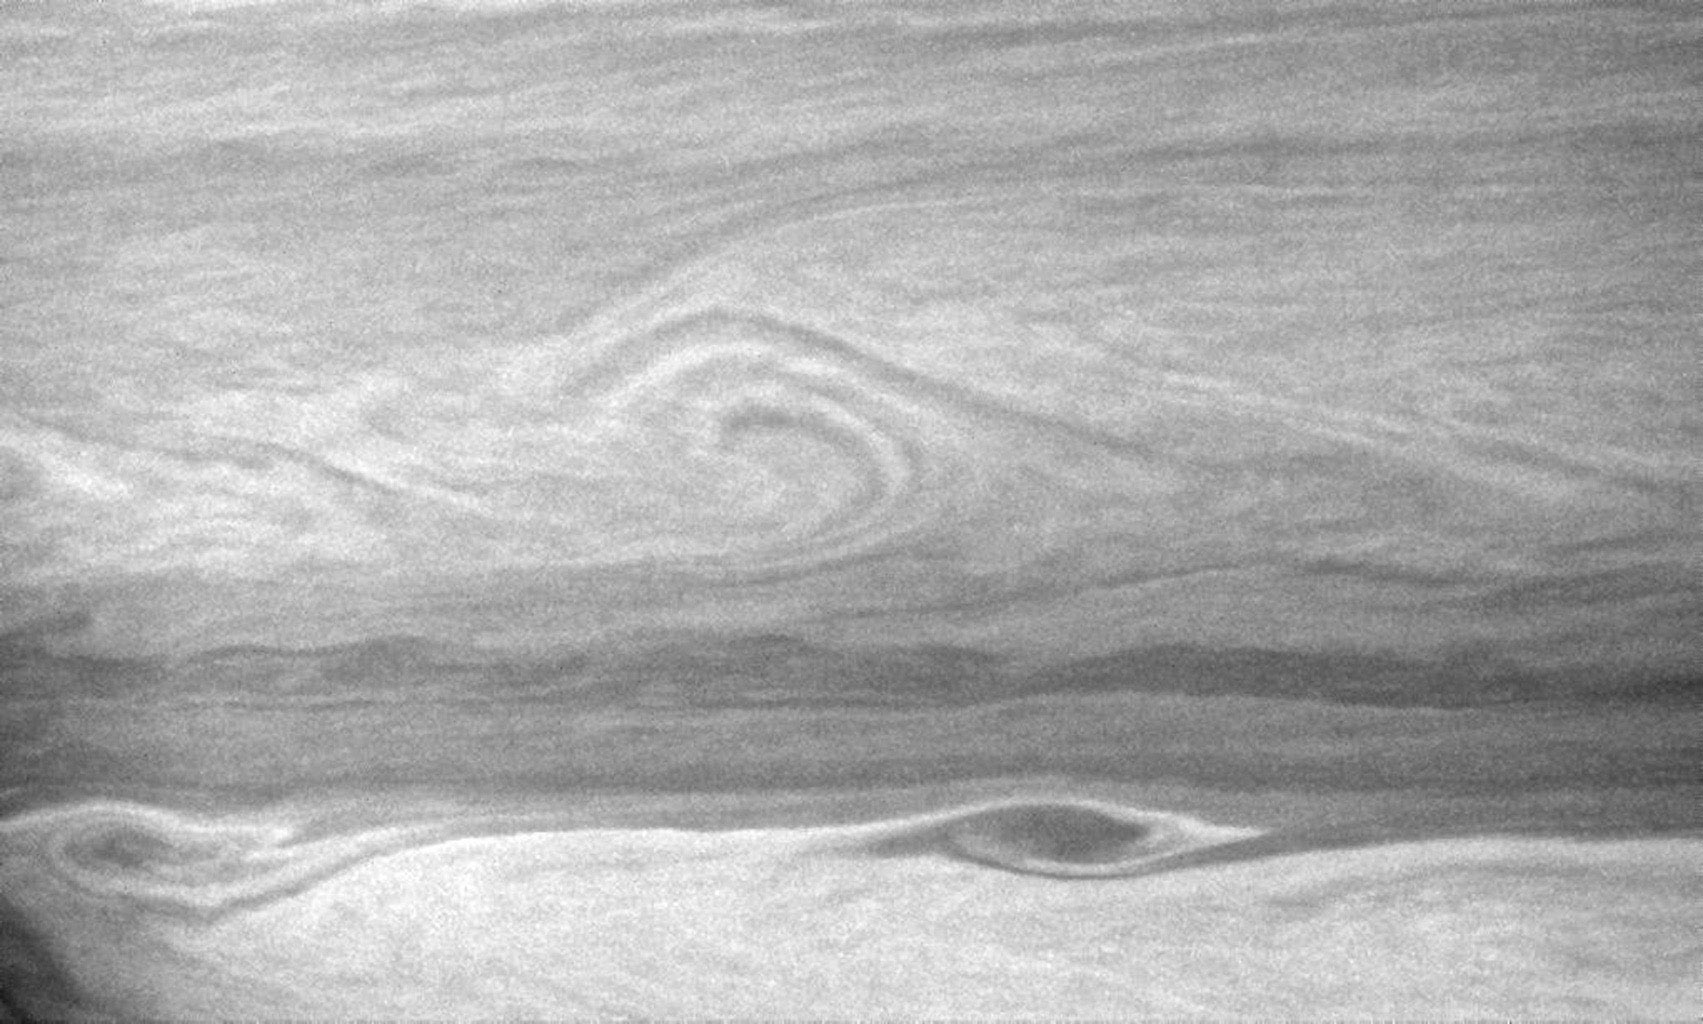 Large vortices edge their way along the turbulent boundary between east-west flowing cloud bands. This view captured by NASA's Cassini spacecraft is centered on a region 22 degrees south of Saturn's equator.